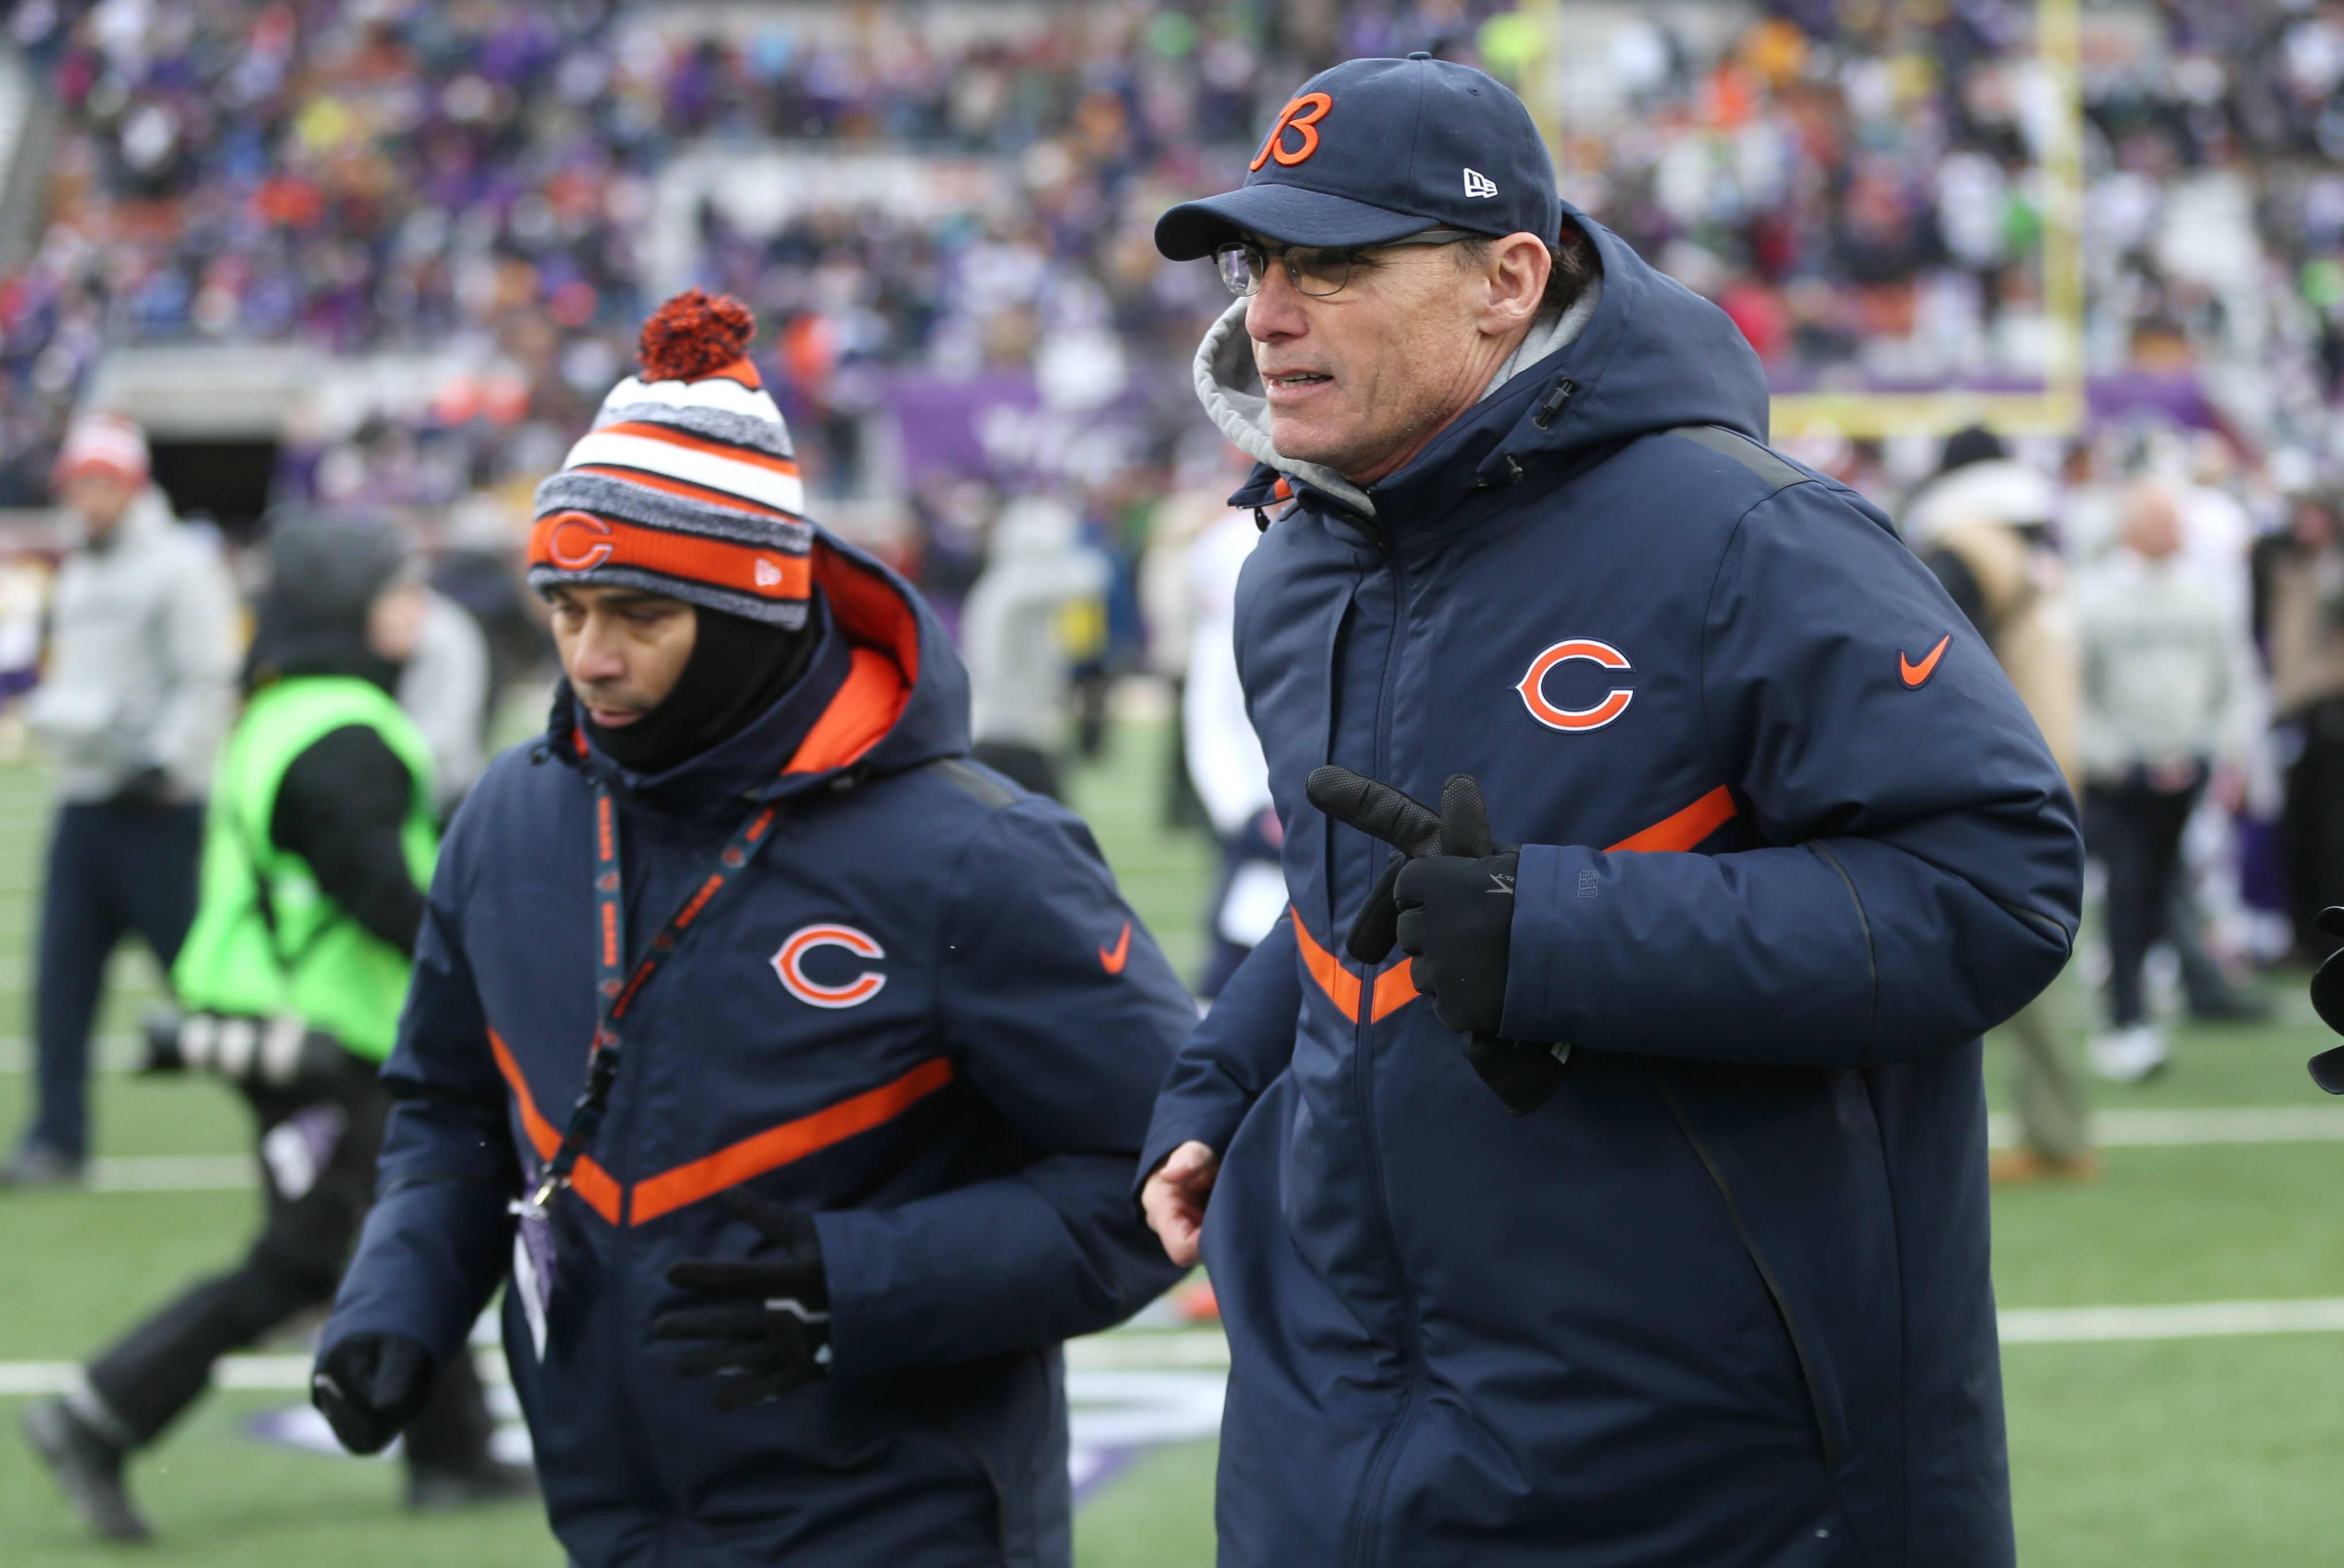 Bears head coach Marc Trestman, right, runs off the field after yesterday's game in Minneapolis. Was it his last as Bears coach?